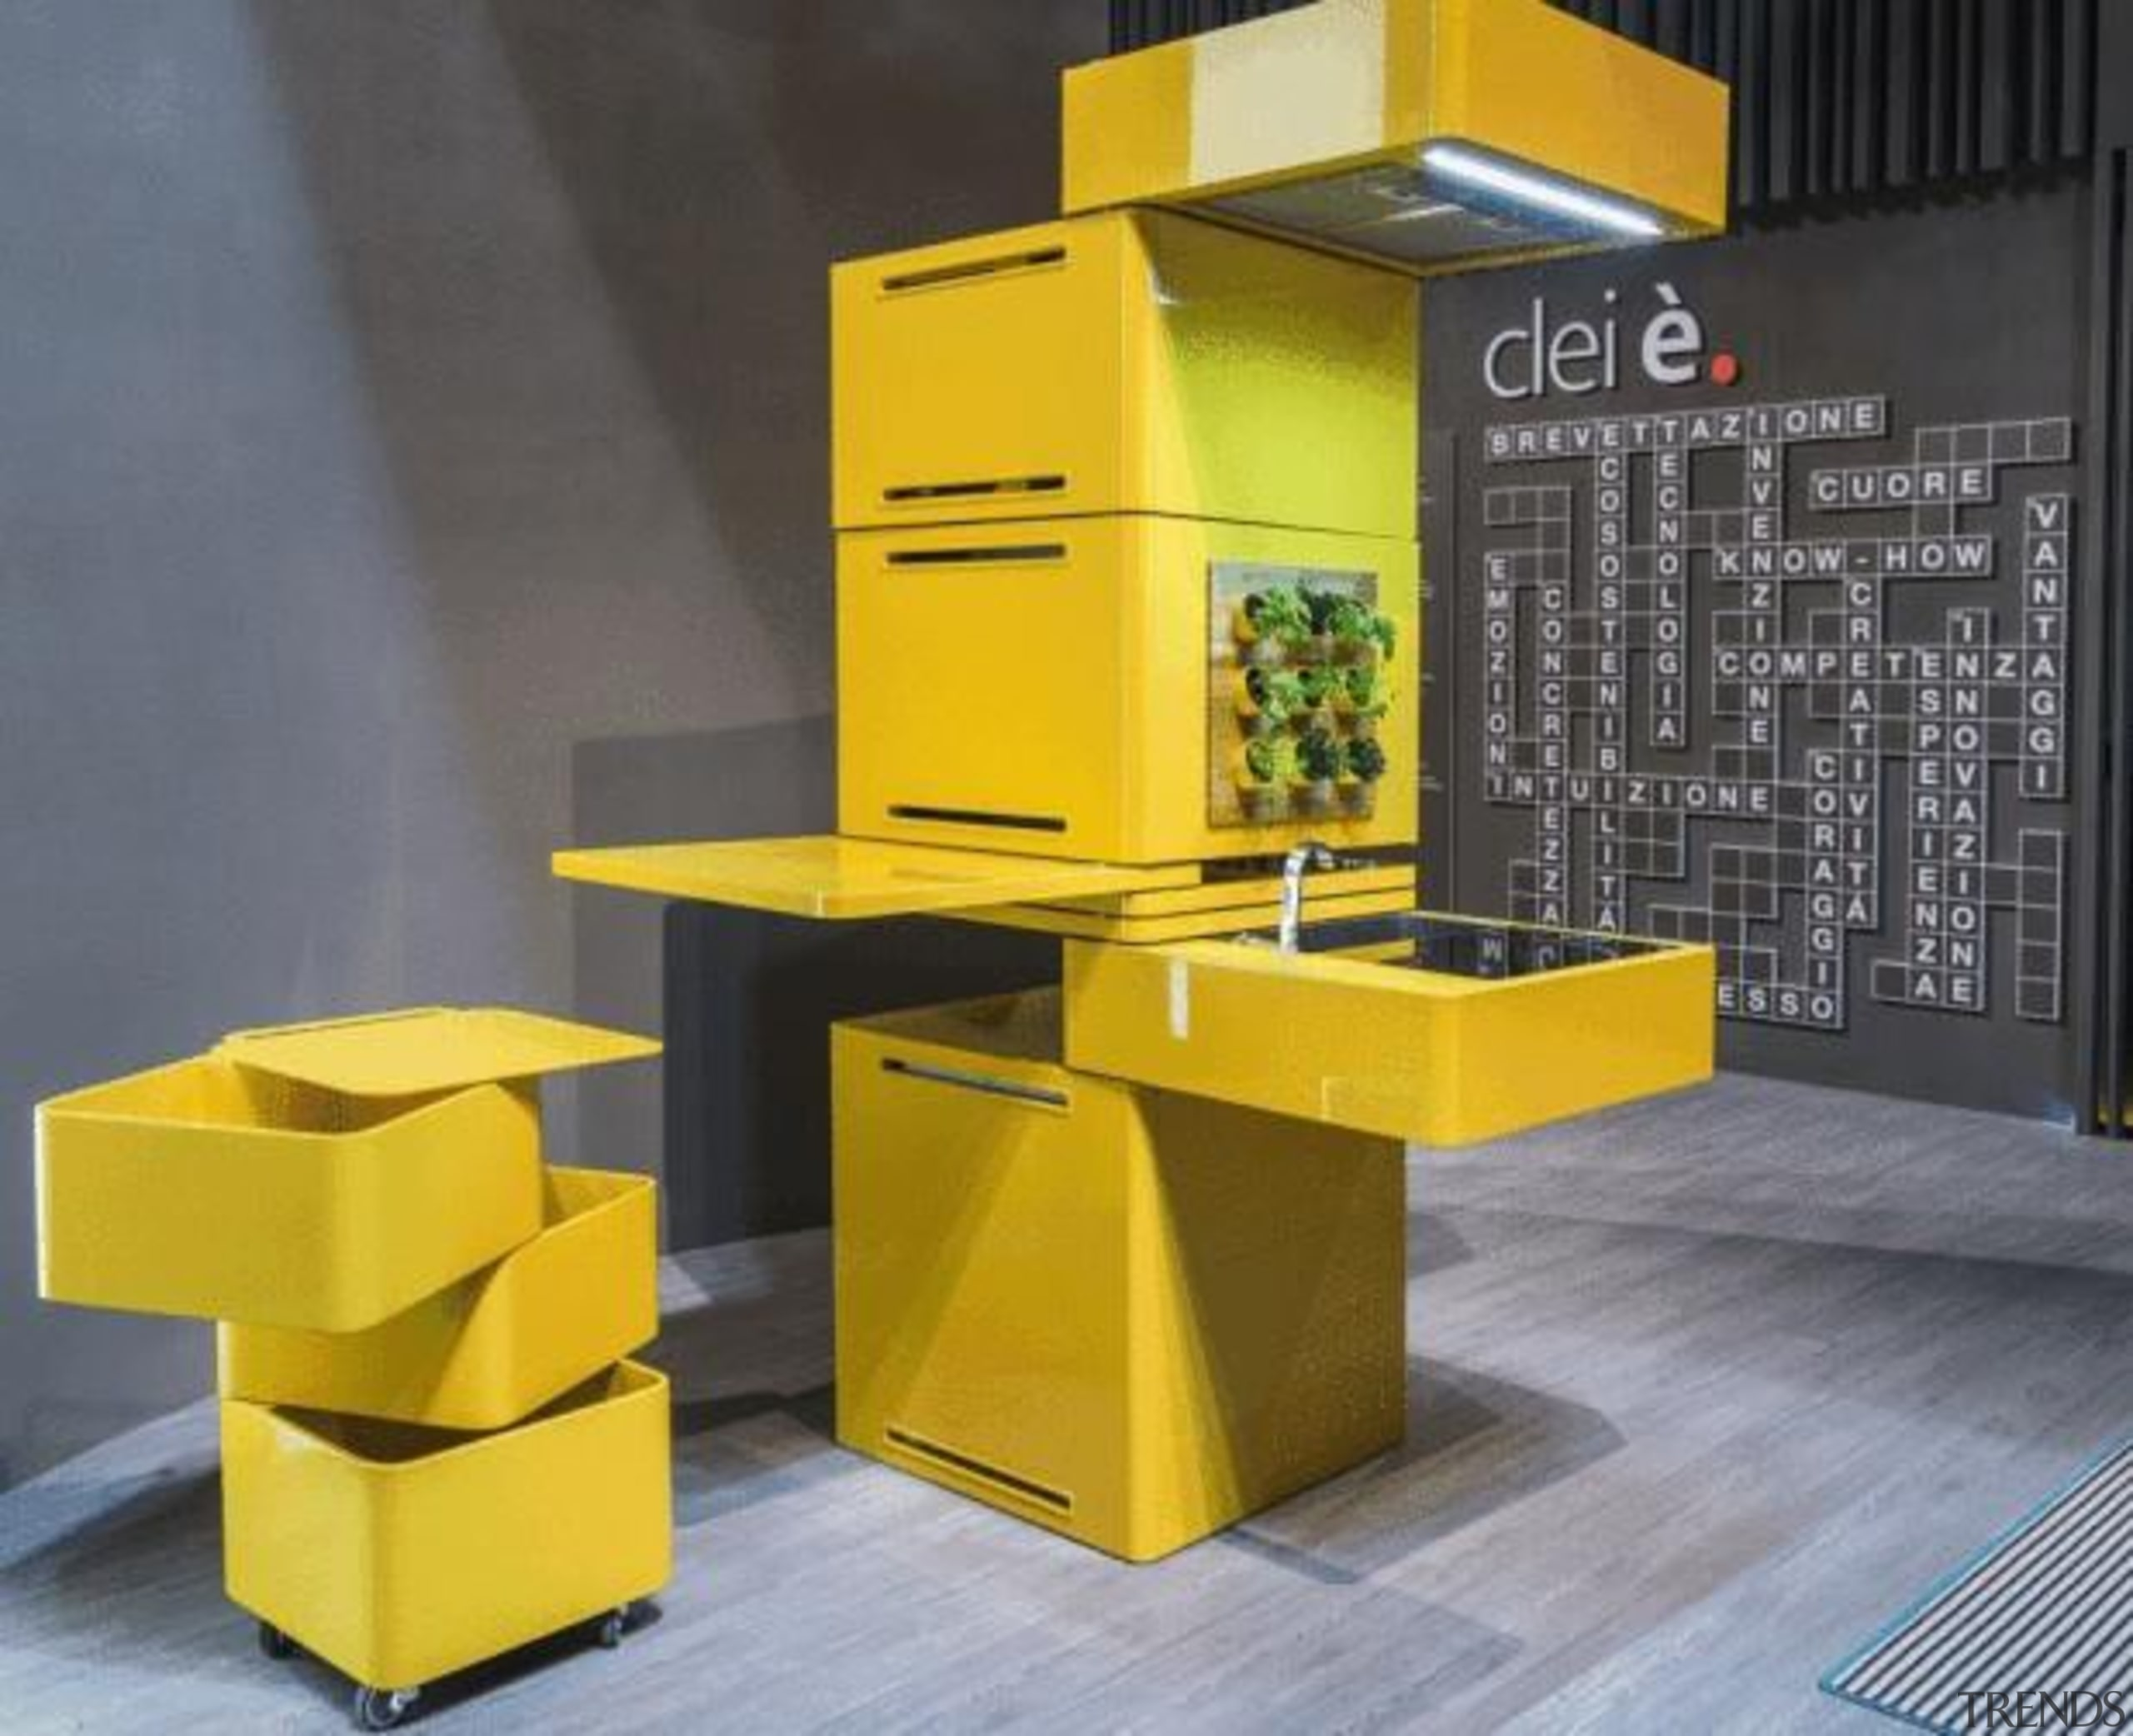 Forget 'bigger is better'; in the eco-conscious yet furniture, product, product design, shelf, shelving, table, yellow, gray